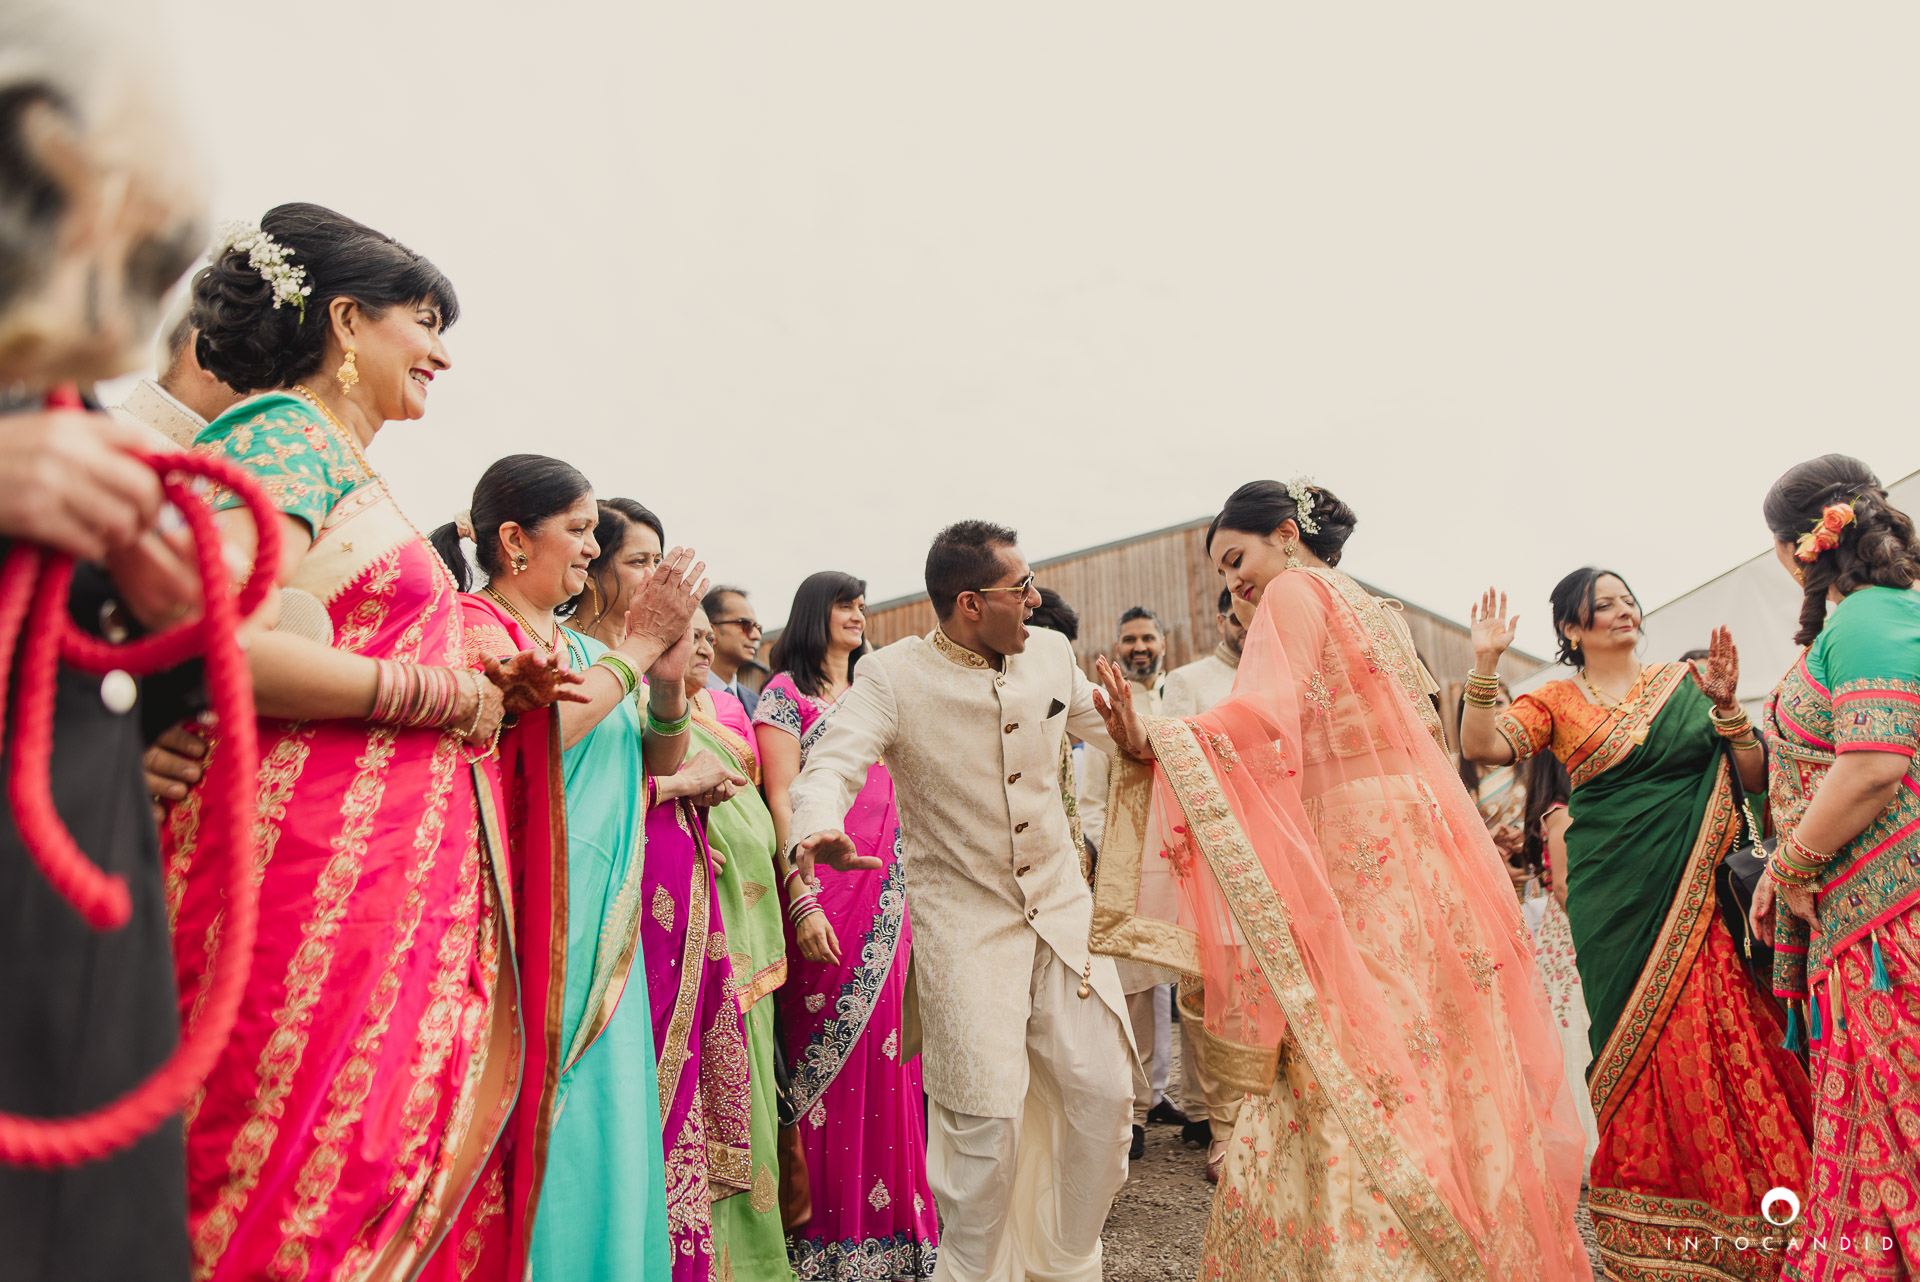 London_Wedding_Photographer_Intocandid_Photography_Ketan & Manasvi_25.JPG